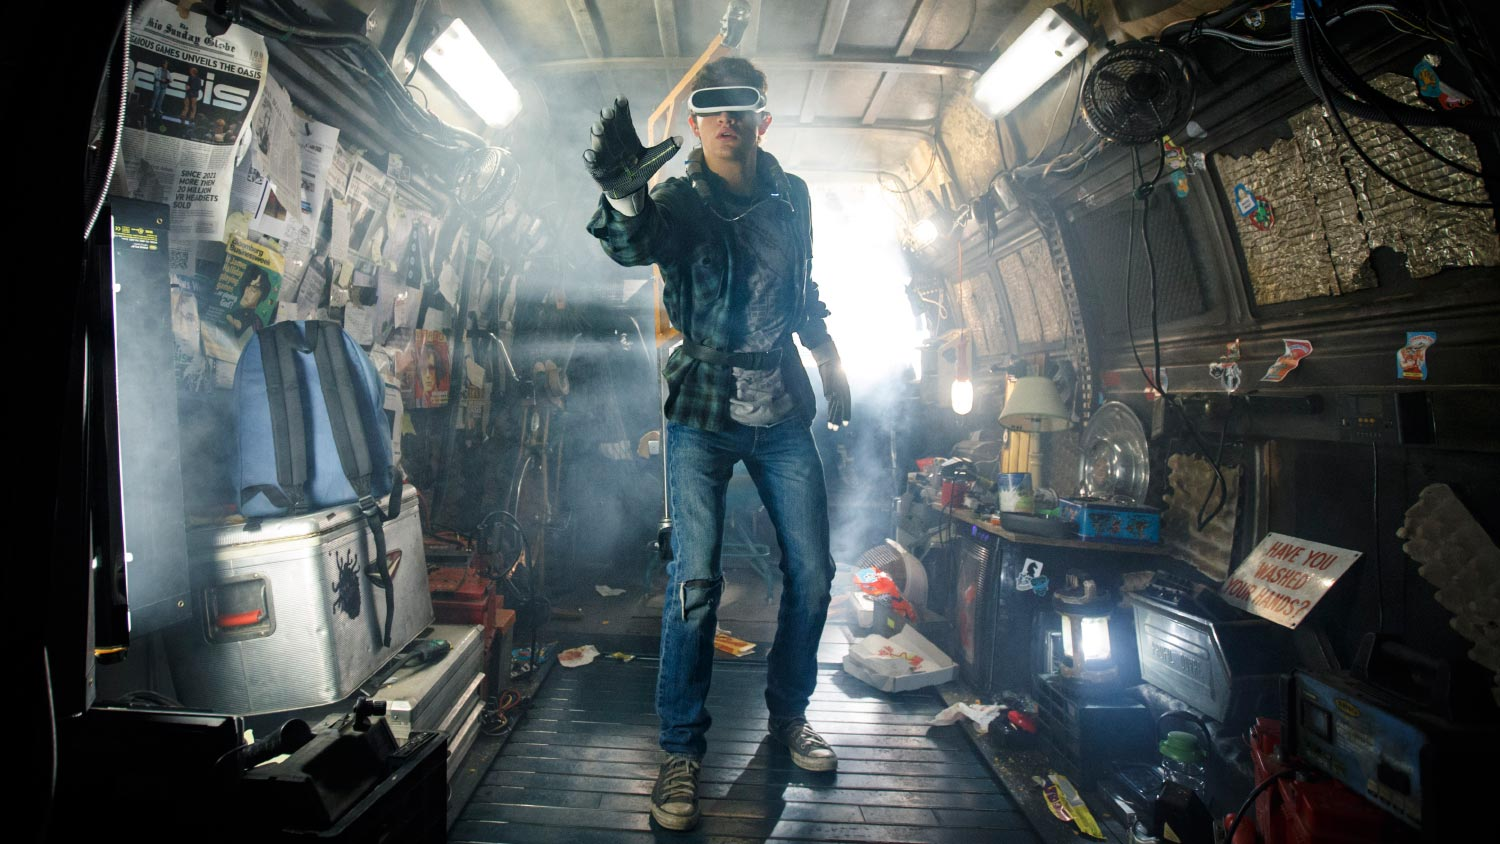 New Ready Player One Spot – Come With Me - OC Movie Reviews - Movie Reviews, Movie News, Documentary Reviews, Short Films, Short Film Reviews, Trailers, Movie Trailers, Interviews, film reviews, film news, hollywood, indie films, documentaries